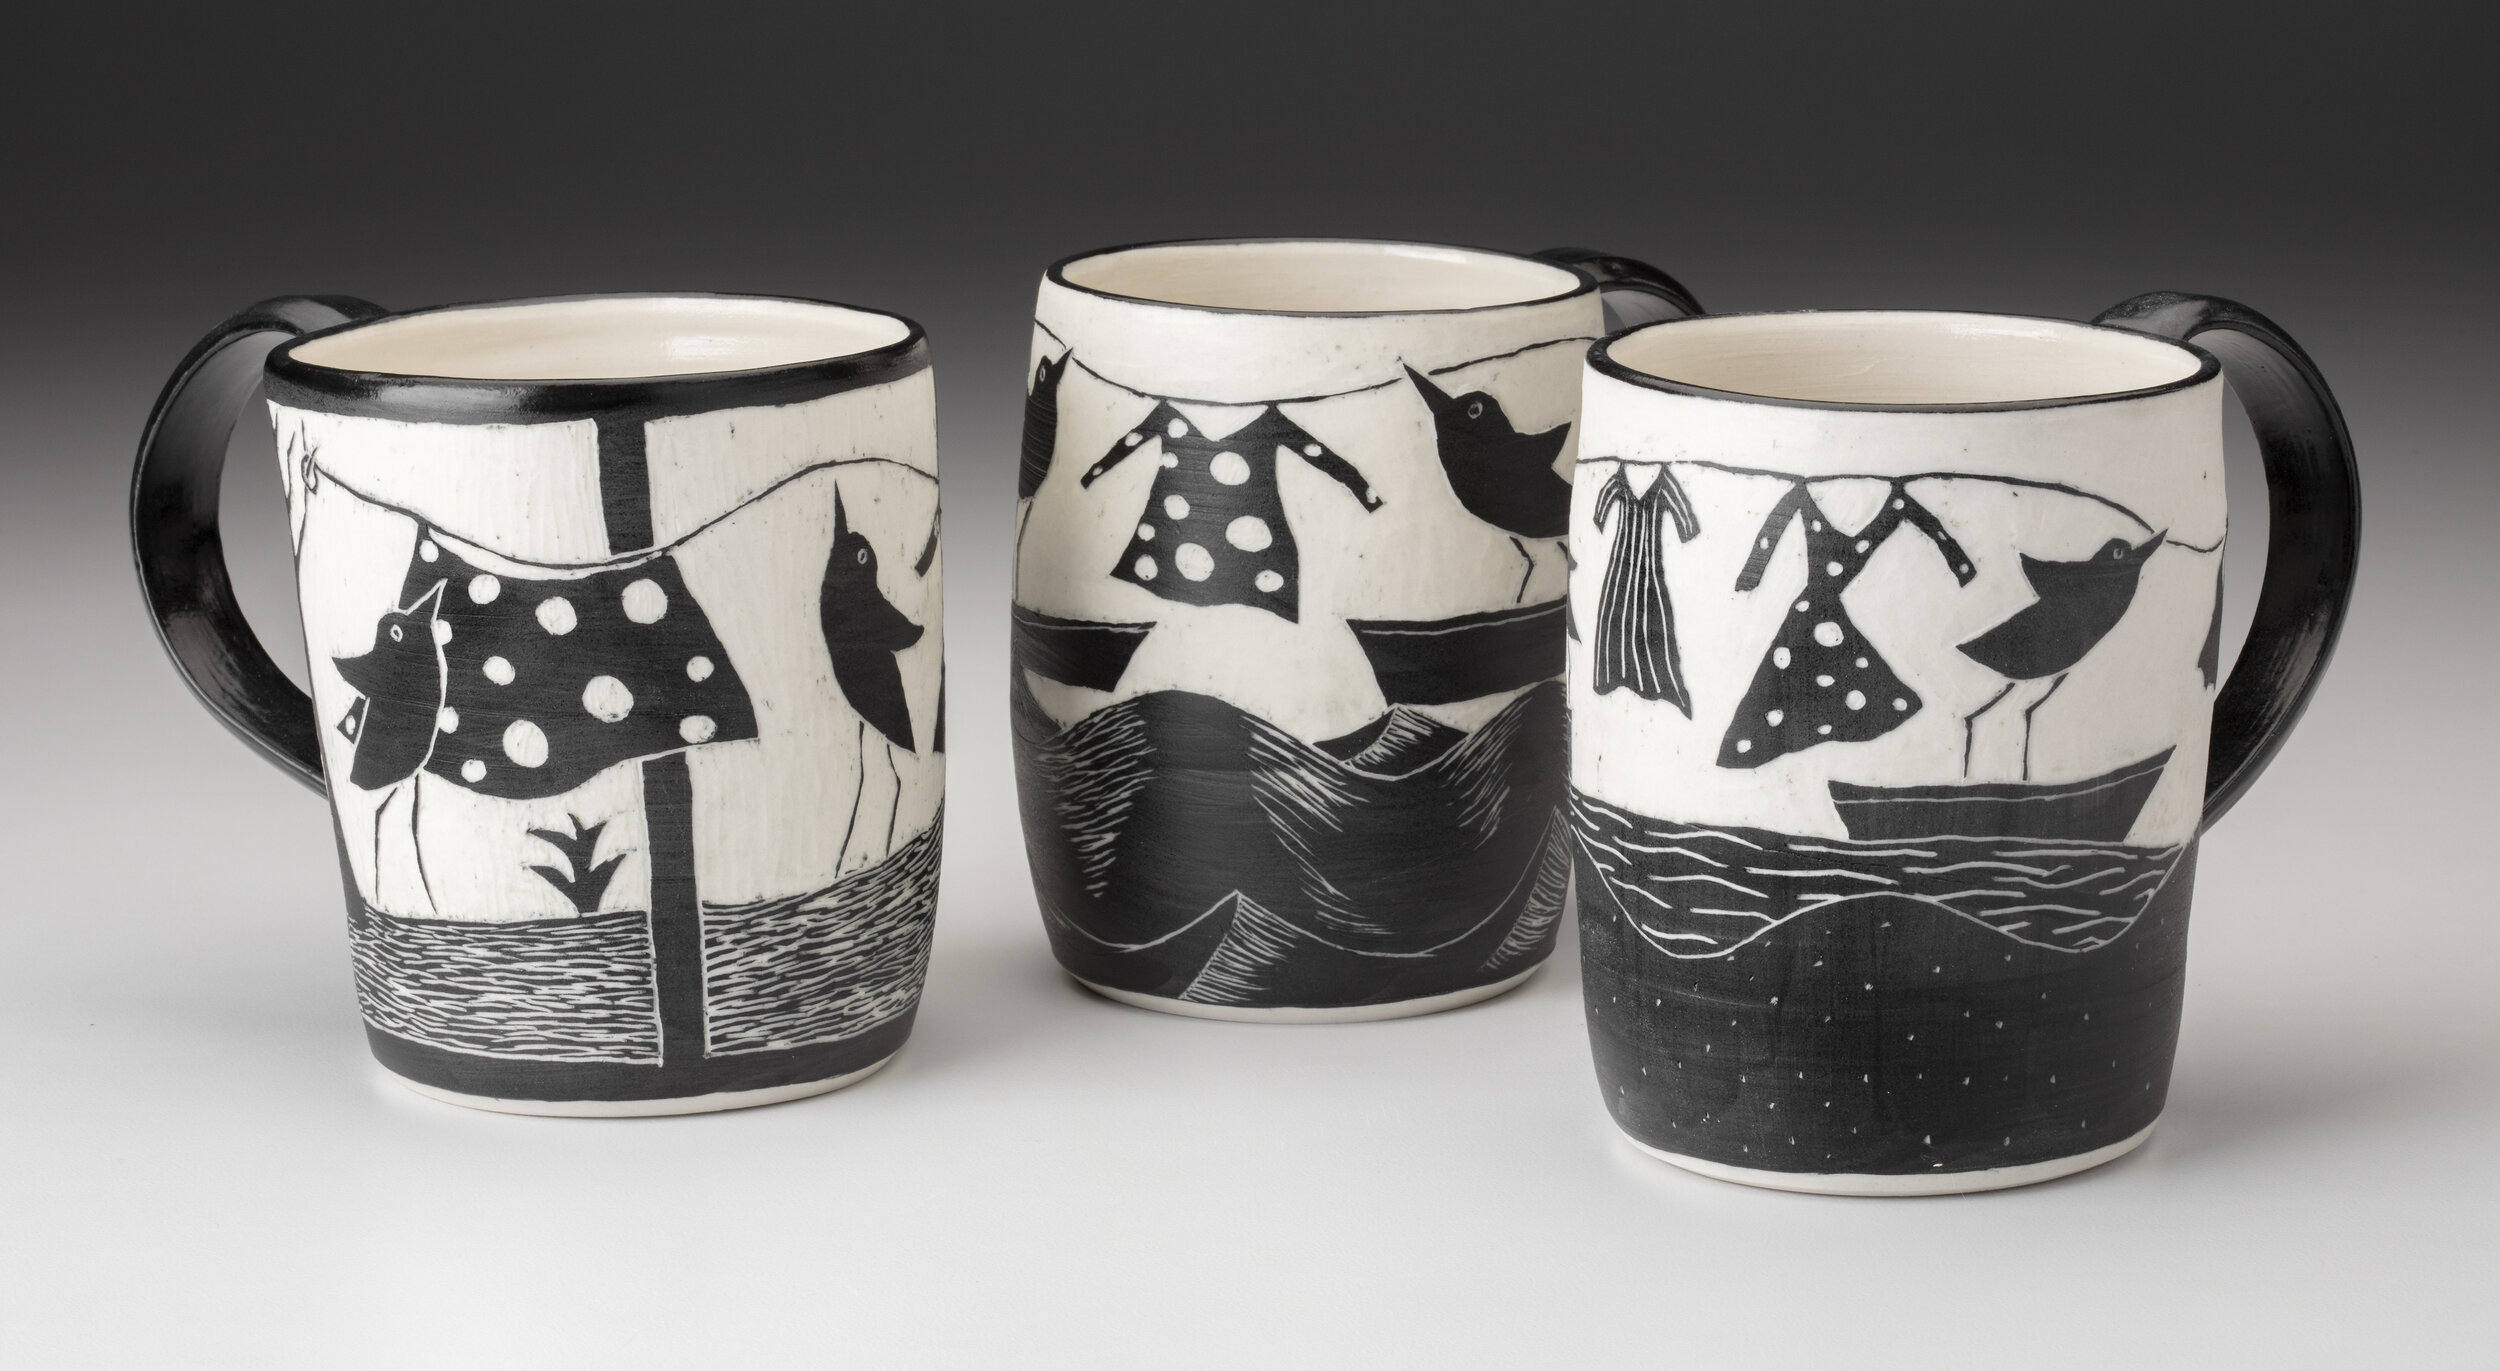 I am not certain of it was on purpose or not but it is interesting to see three totally different polka dotted objects on three different cups